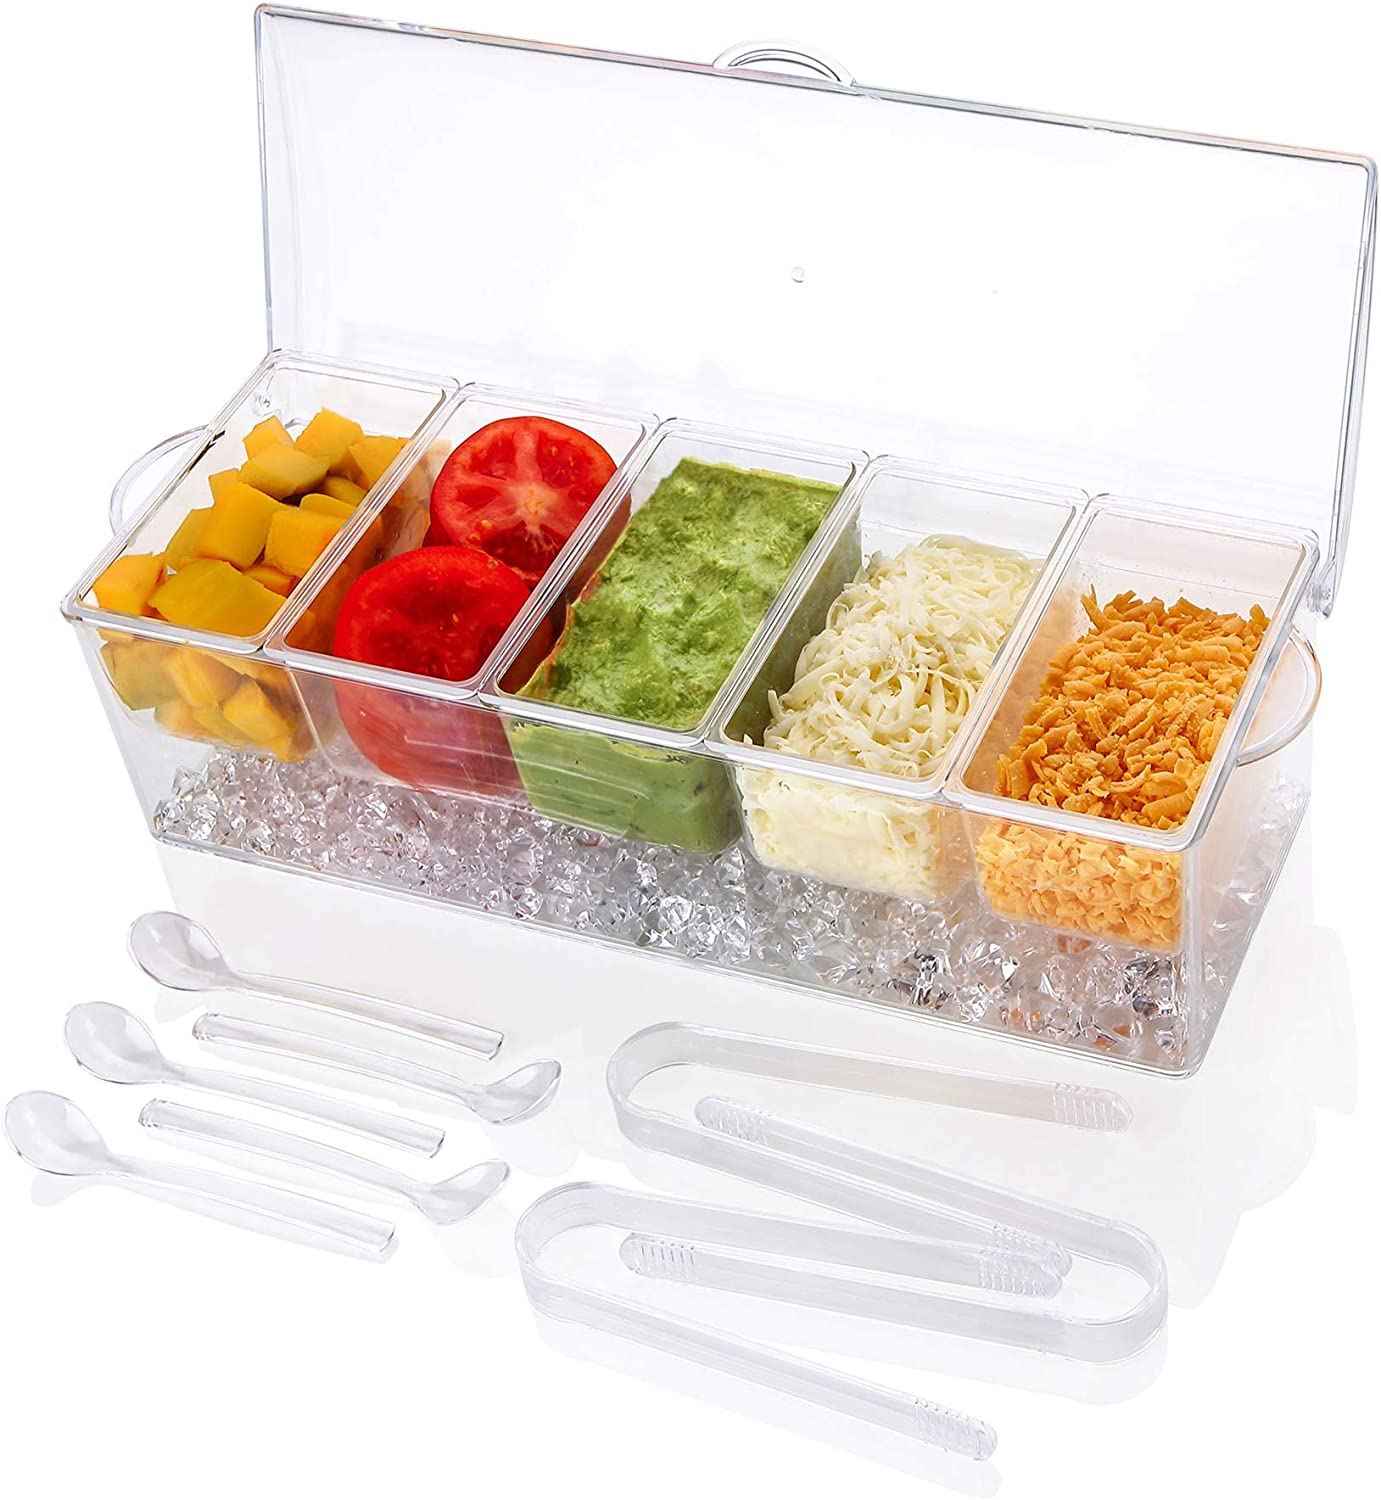 IVYHOME Ice Chilled 5 Compartment Condiment Server Caddy | Plastic Storage Food Containers | Serving Tray Container with 5 Removable Dishes Over 2 Cup Capacity Each and Hinged Lid